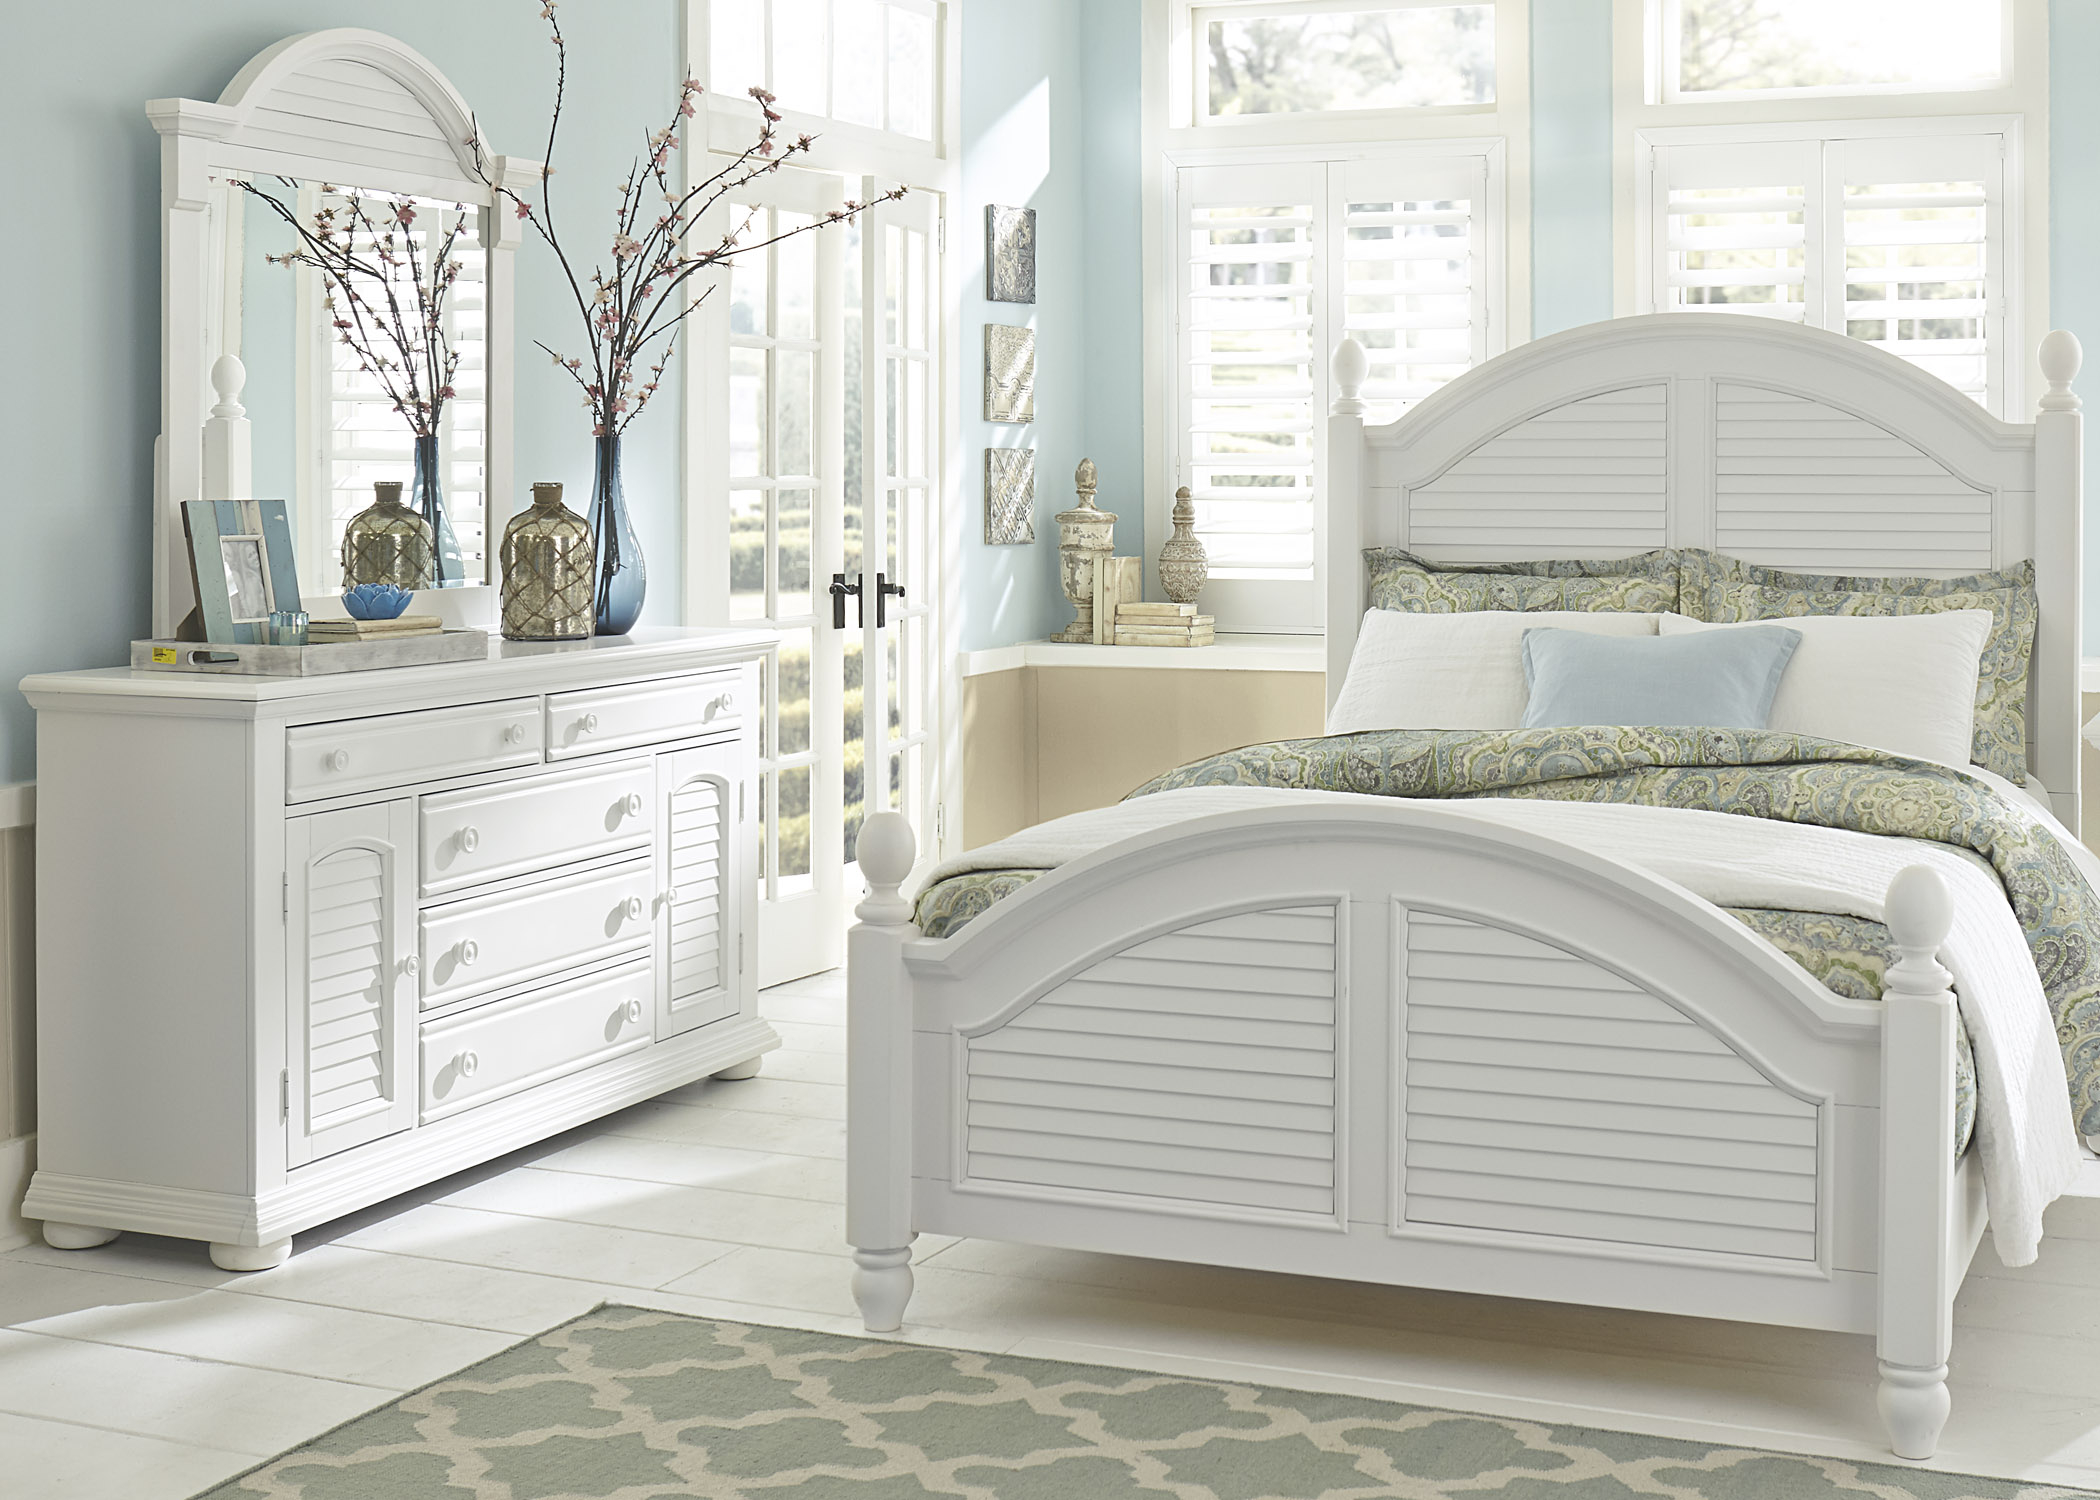 Summer House Queen Bedroom Group by Liberty Furniture at Dean Bosler's